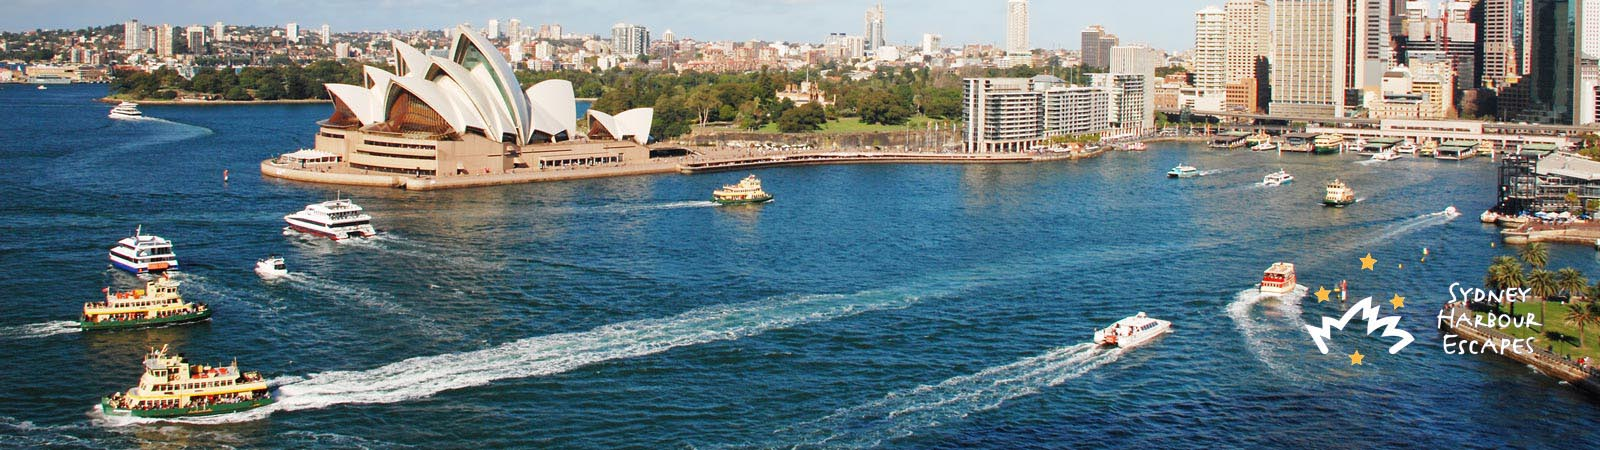 Sydney Harbour Boat Transfers